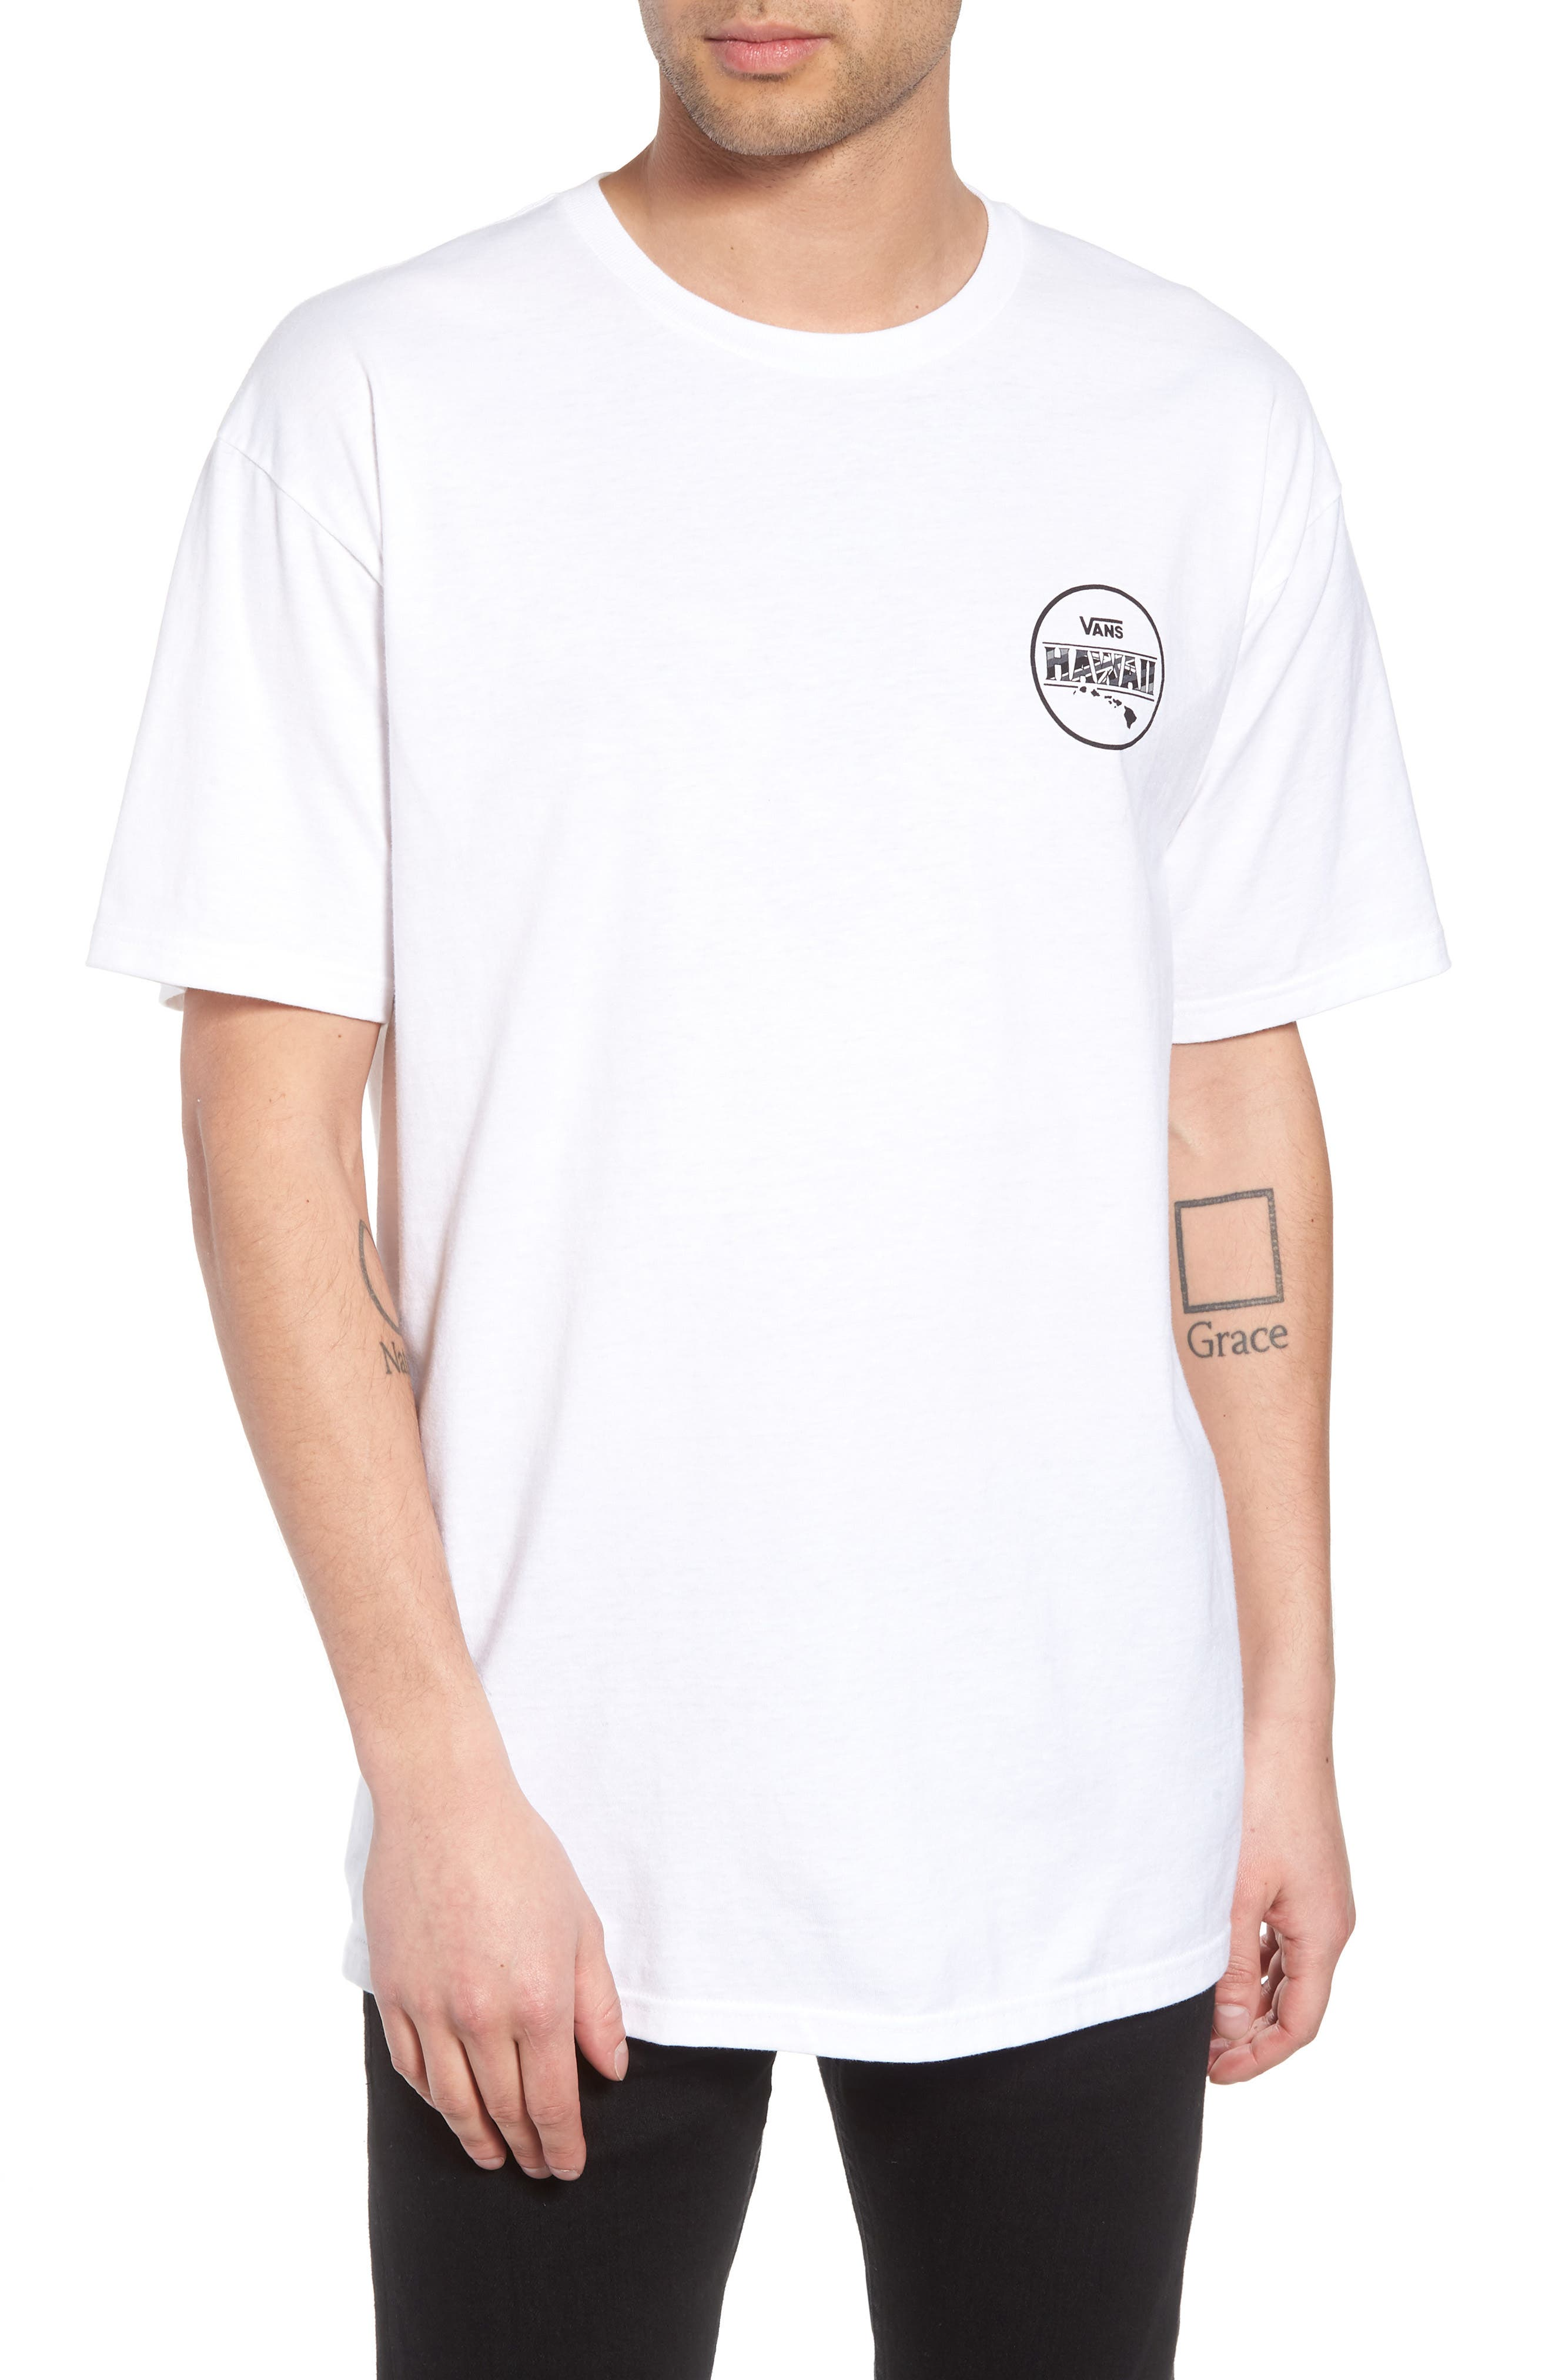 Makai Fill II T-Shirt,                             Main thumbnail 1, color,                             White/ Hi Flyin